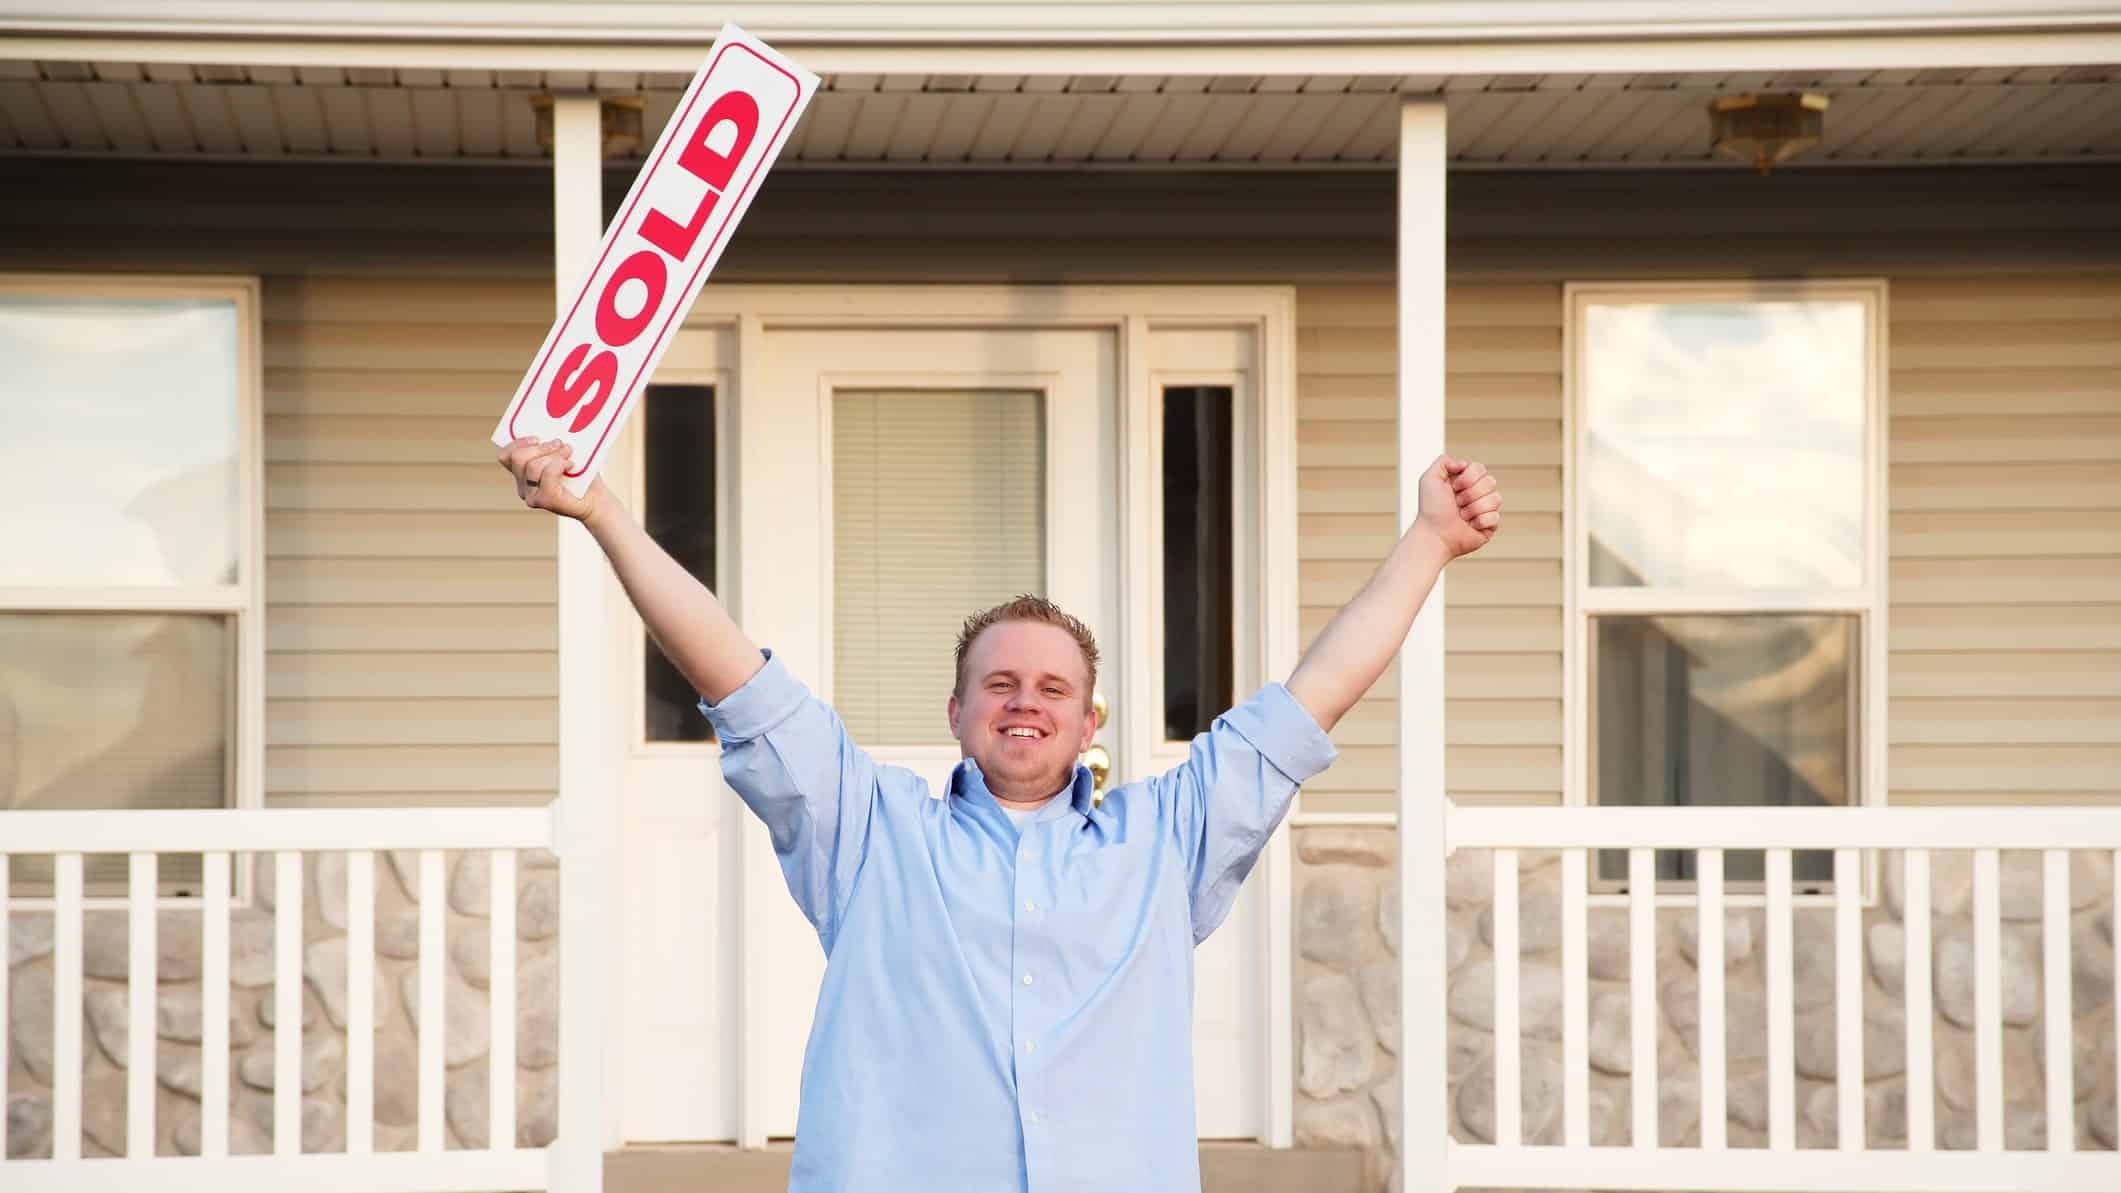 Stockland dividend share price man happy at property being sold with arms raised in the air